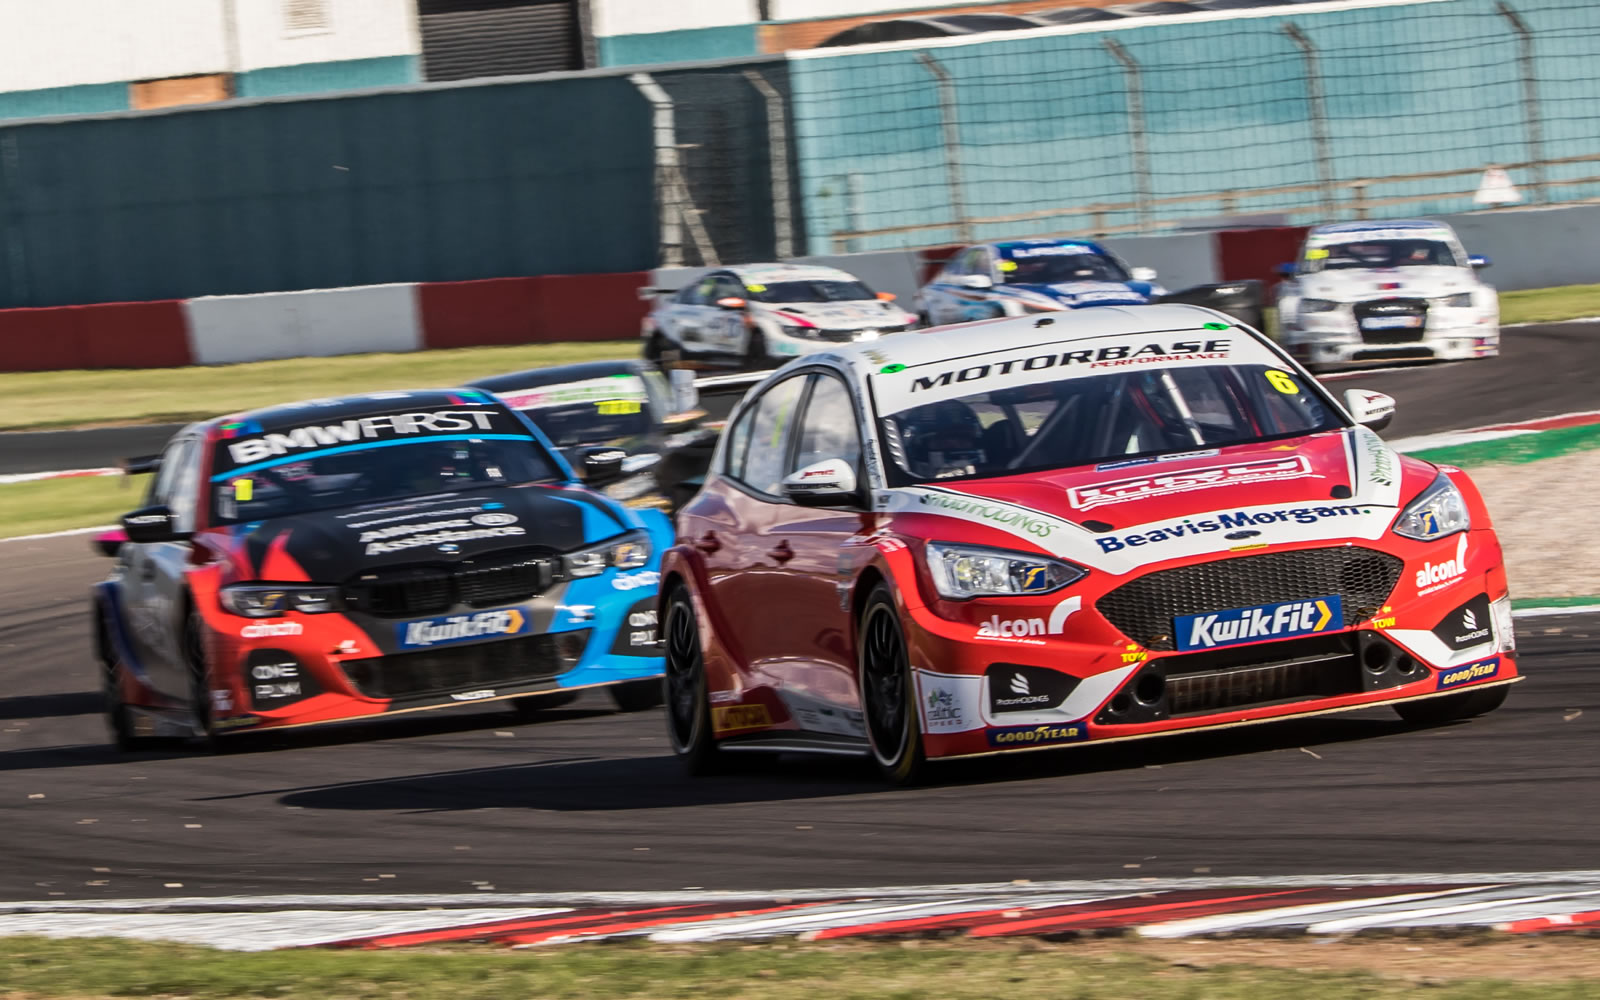 Motorbase on a high after debut podiums for new Ford Focus machines